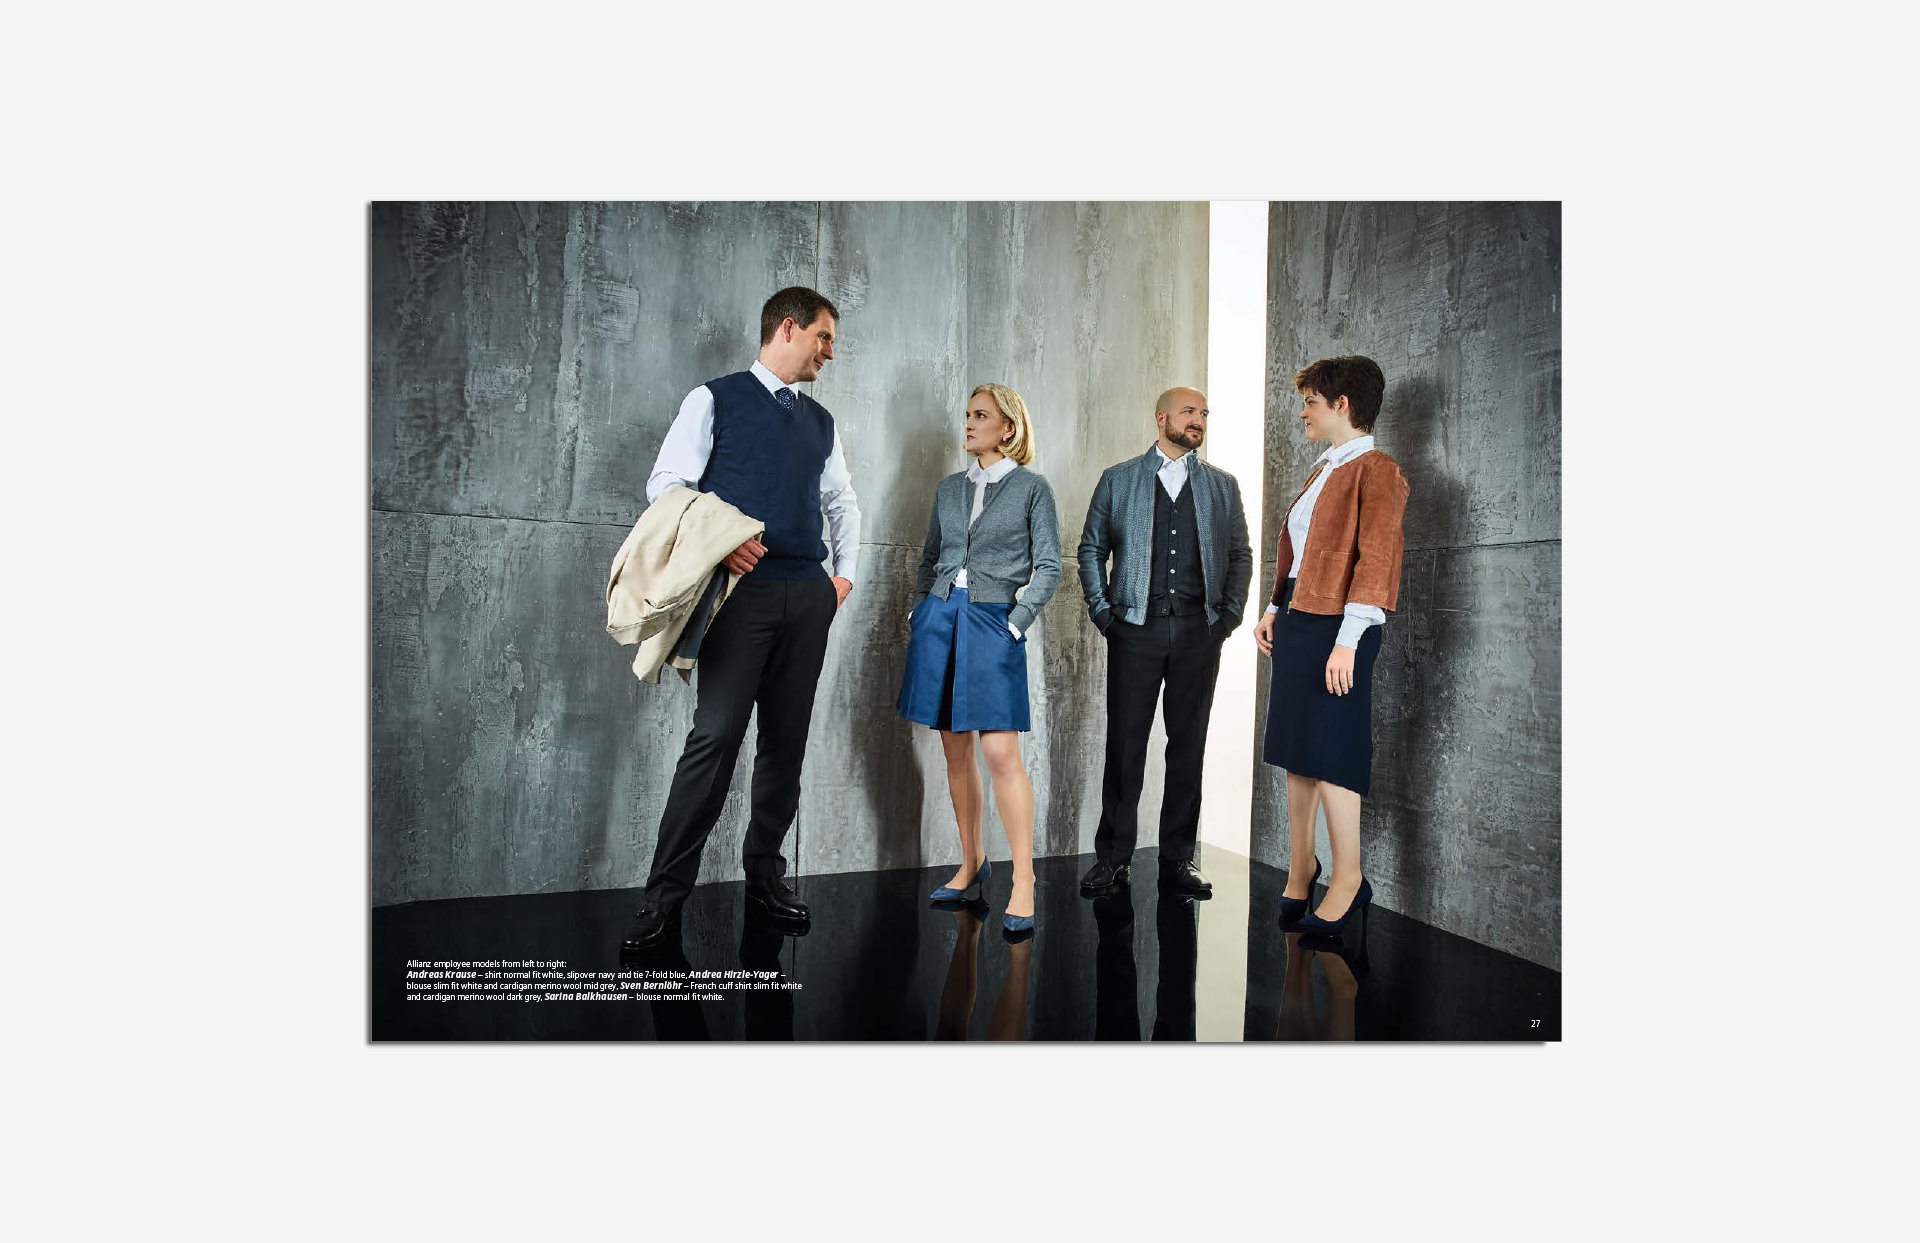 Allianz SE catalog katalog Marketing Strategy design fashion collection shooting business layout print LAKE5 Consulting GmbH Hannover Germany